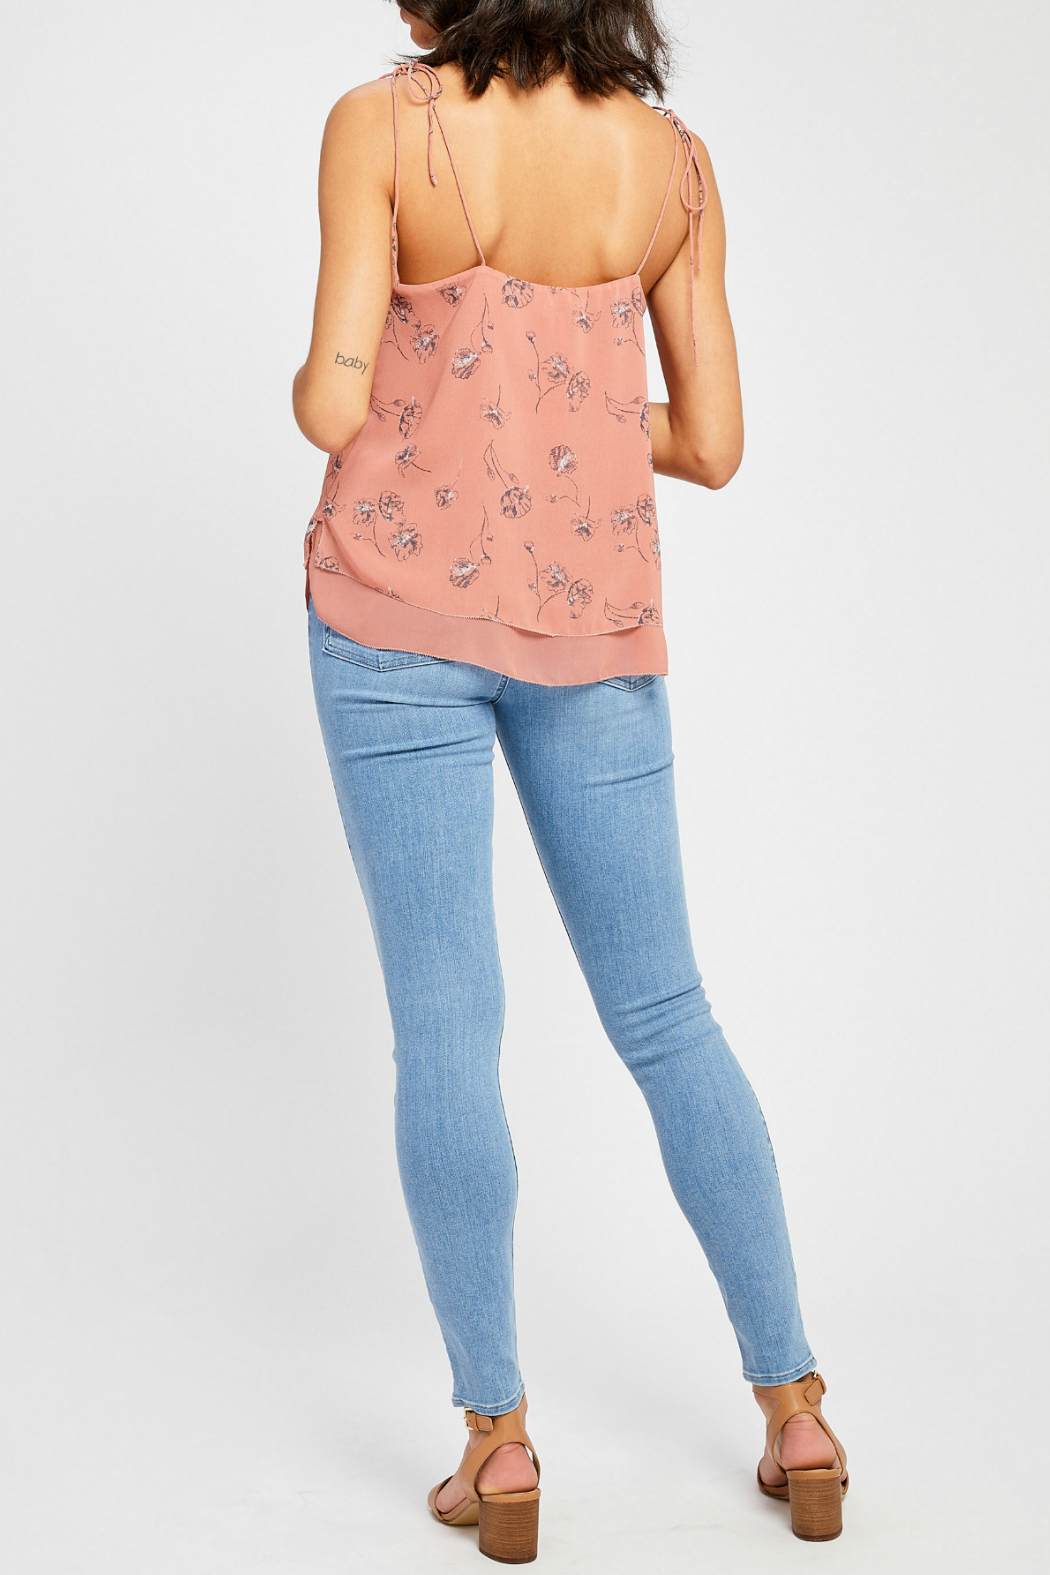 Gentle Fawn Evelyn lined tank w shoulder ties - Side Cropped Image